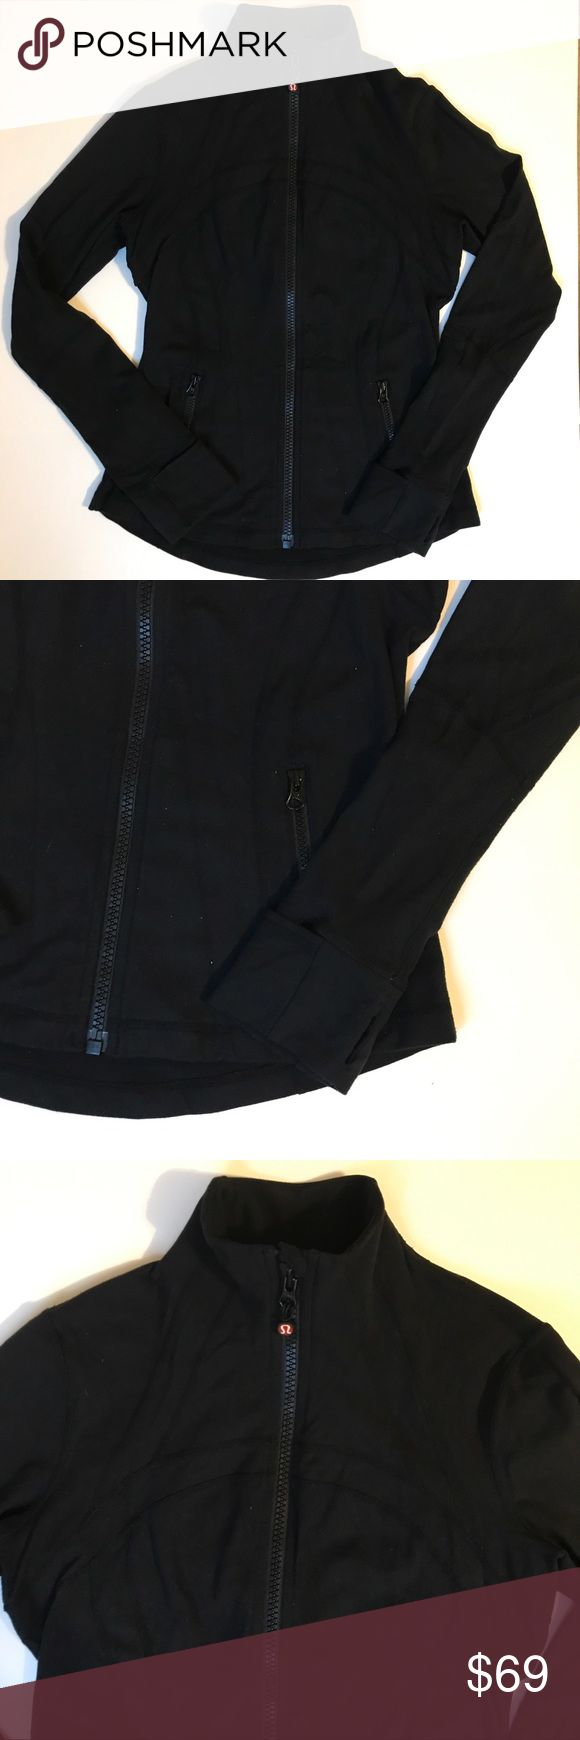 Lululemon DEFINE Full Zip Black Athletic Jacket Older lululemon Define fitted jacket. 87/13 blend. Little sign of wear-mostly some pilling that can easily be removed, otherwise in great condition. Thumb holes and cuffins, vent at back, of red lululemon emblem zipper pull, fitted and easy to layer. Black color is not faded.   Make me an offer! lululemon athletica Jackets & Coats